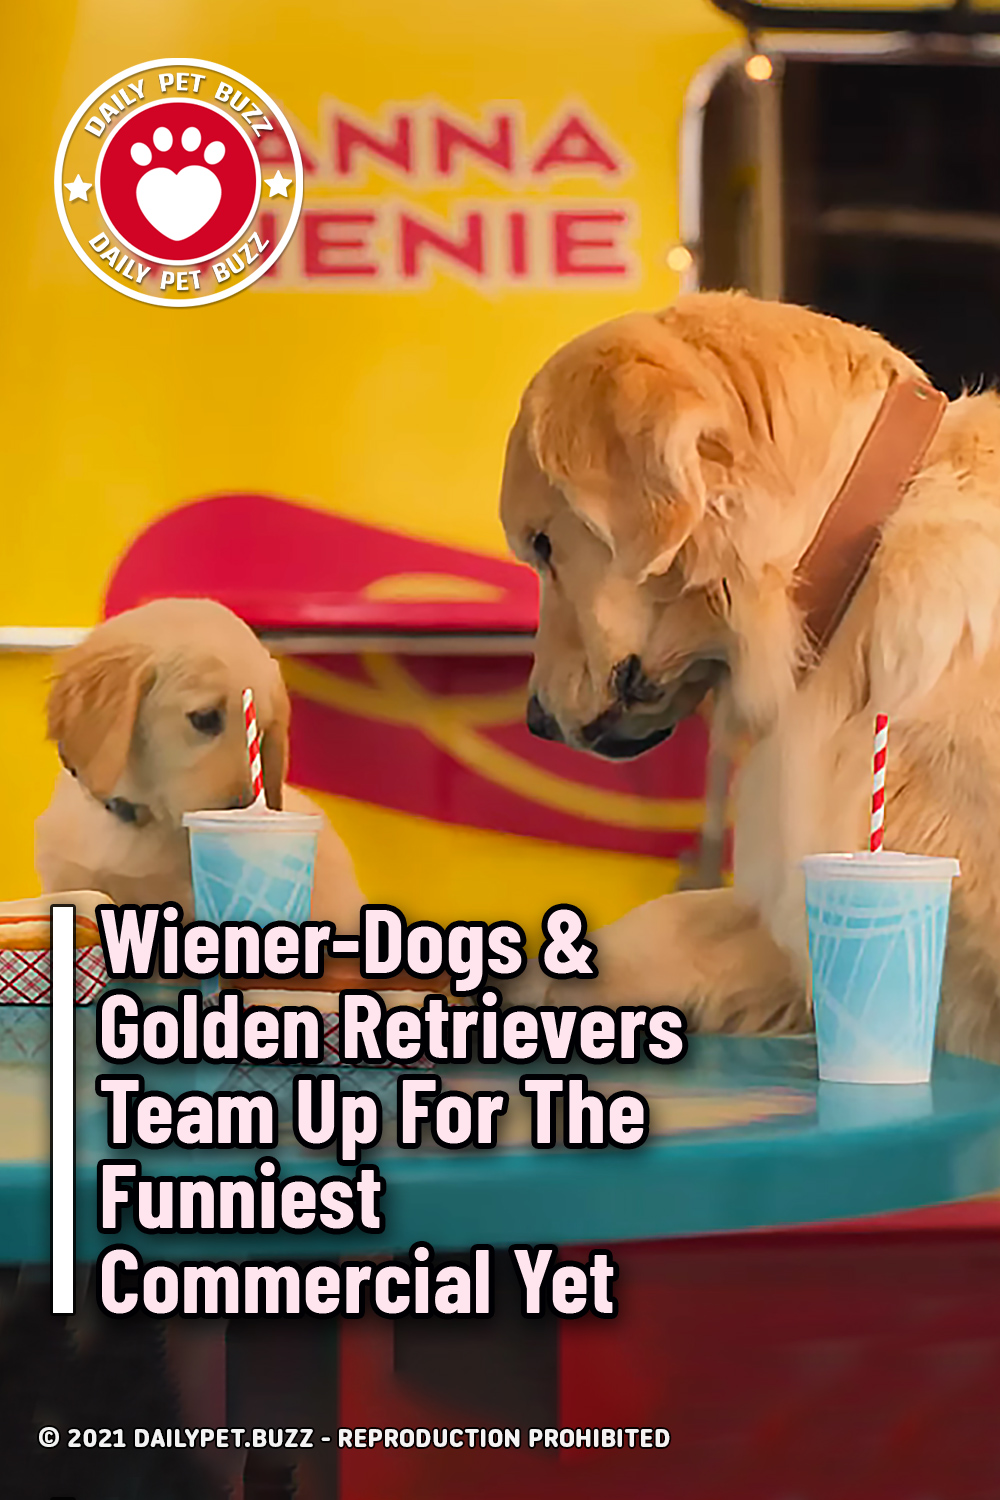 Wiener-Dogs & Golden Retrievers Team Up For The Funniest Commercial Yet